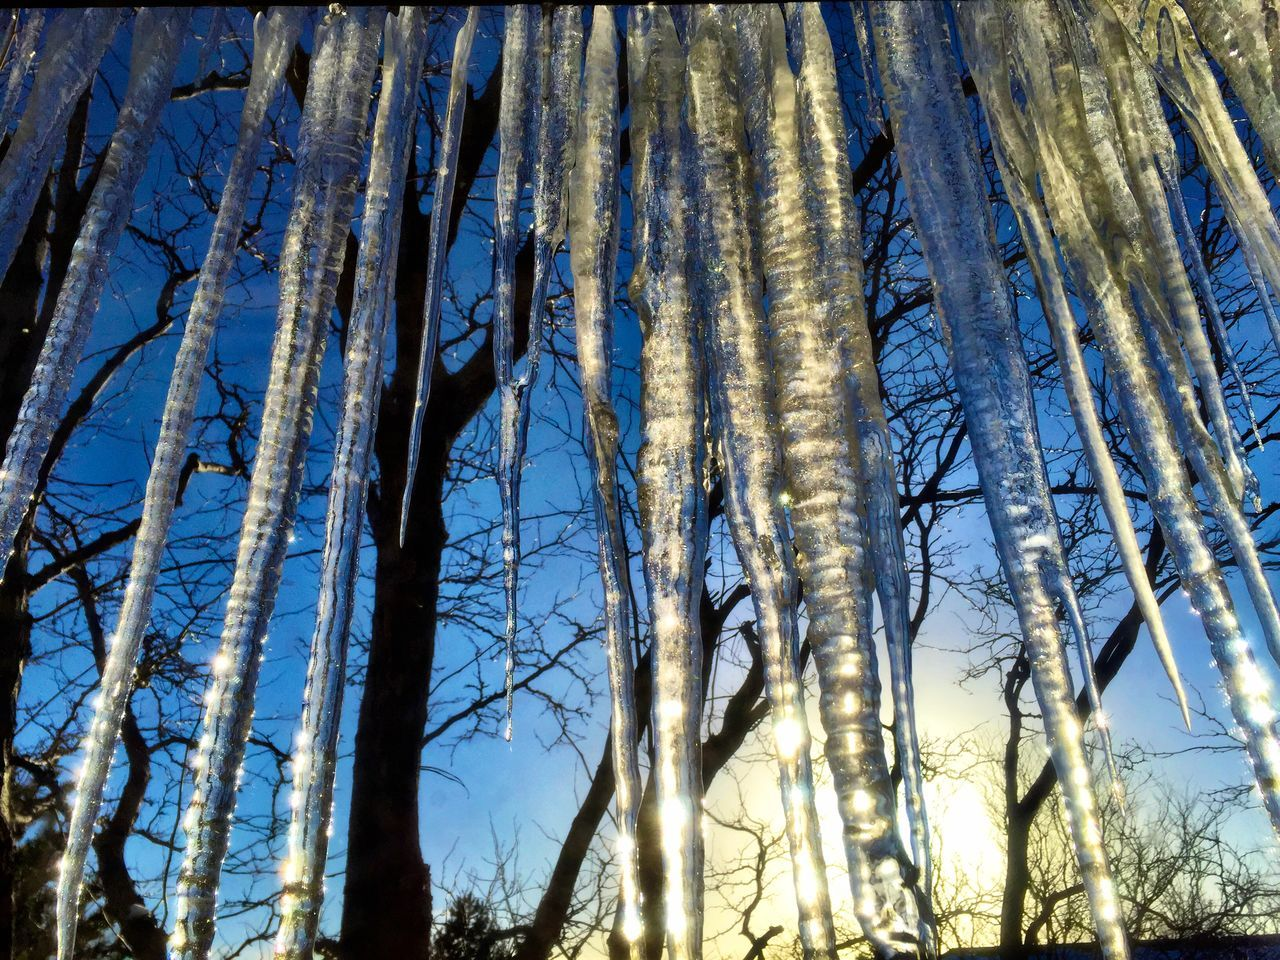 Low Angle View Of Icicles Against Bare Trees